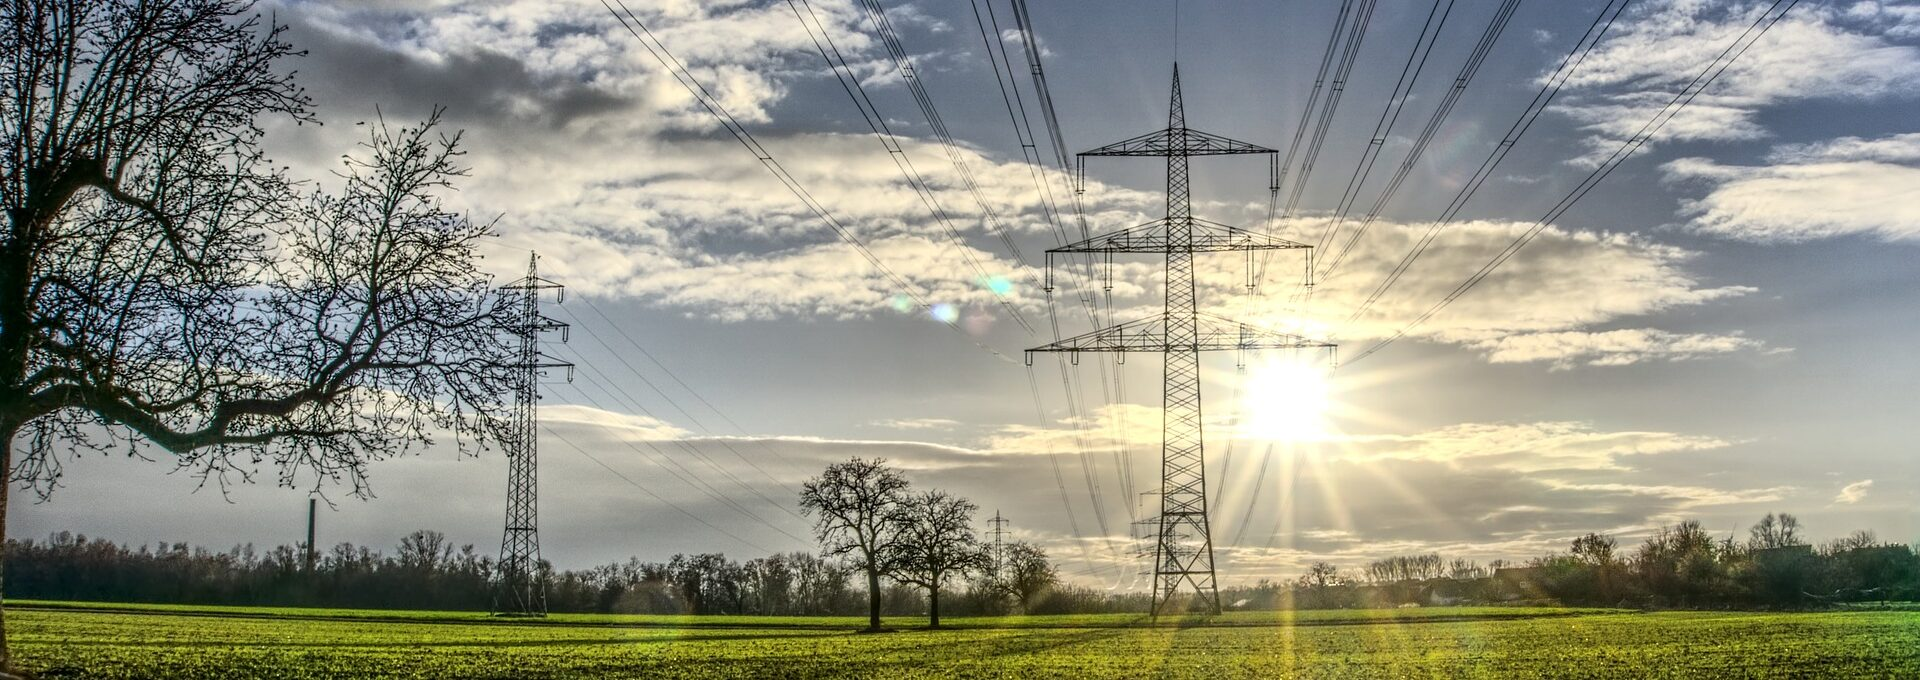 Electricity pylons in field